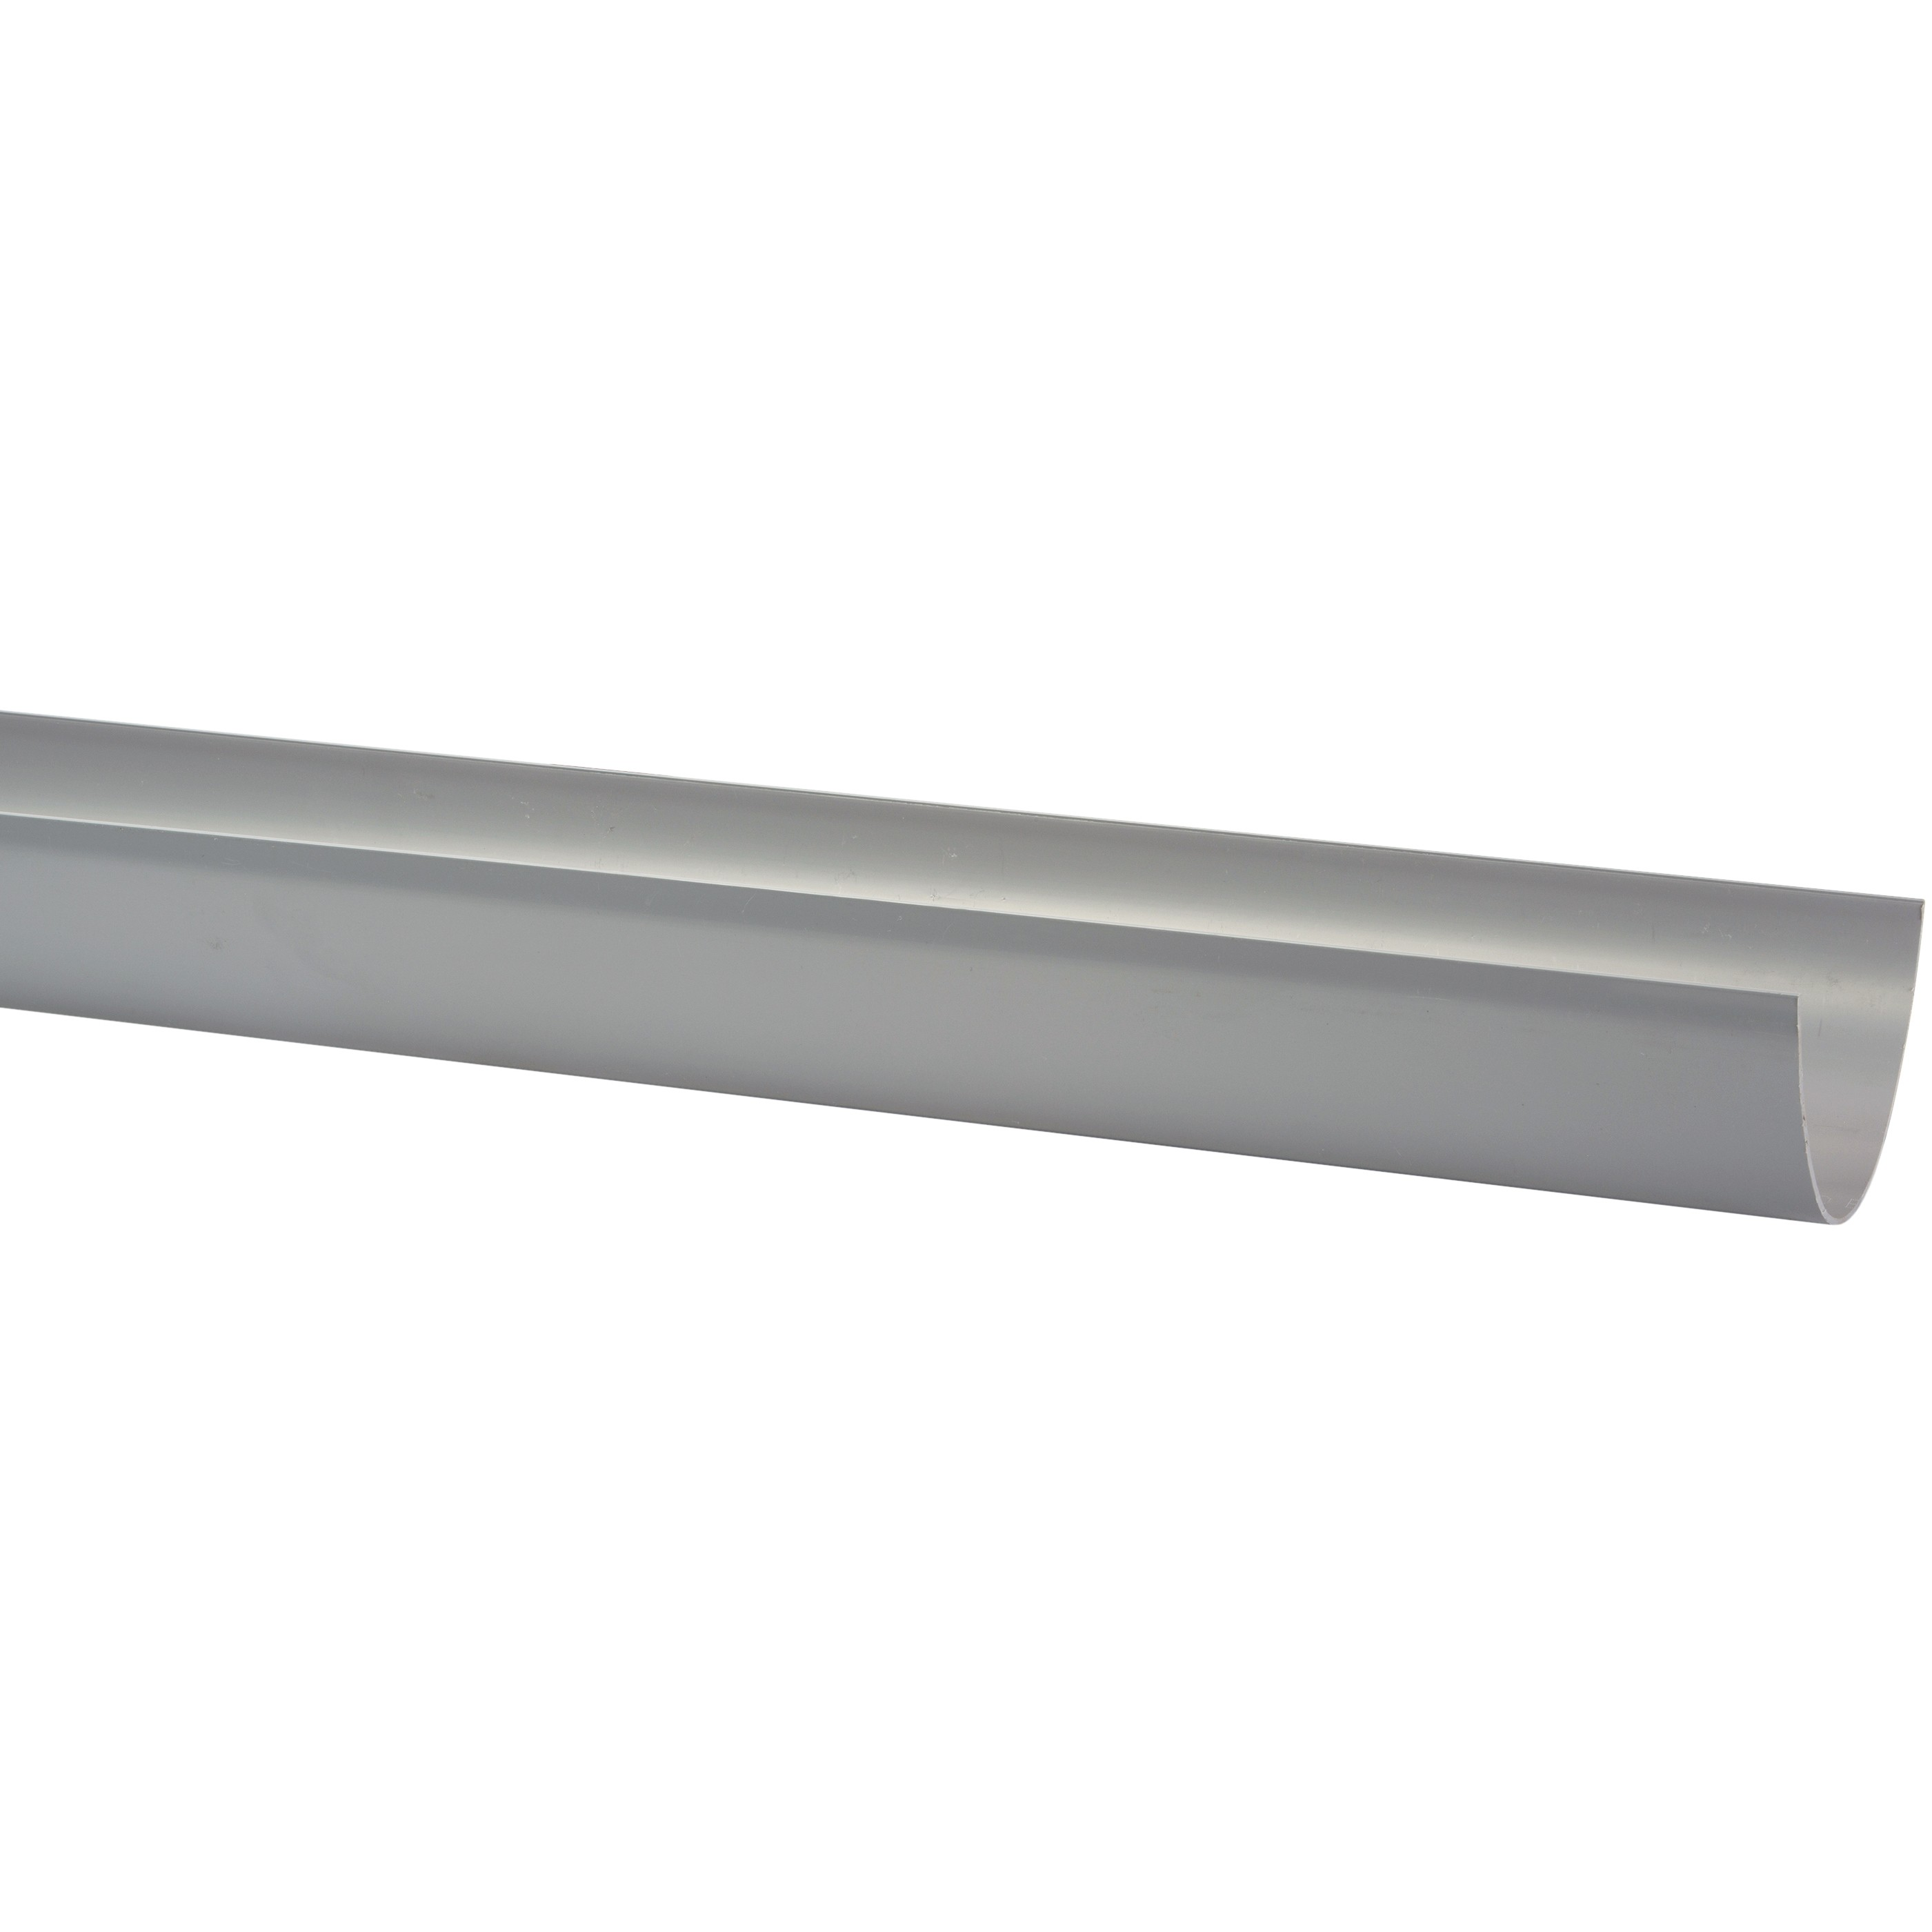 Polypipe 117mm Polyflow Deep Capacity Gutter - Grey, 4 metre